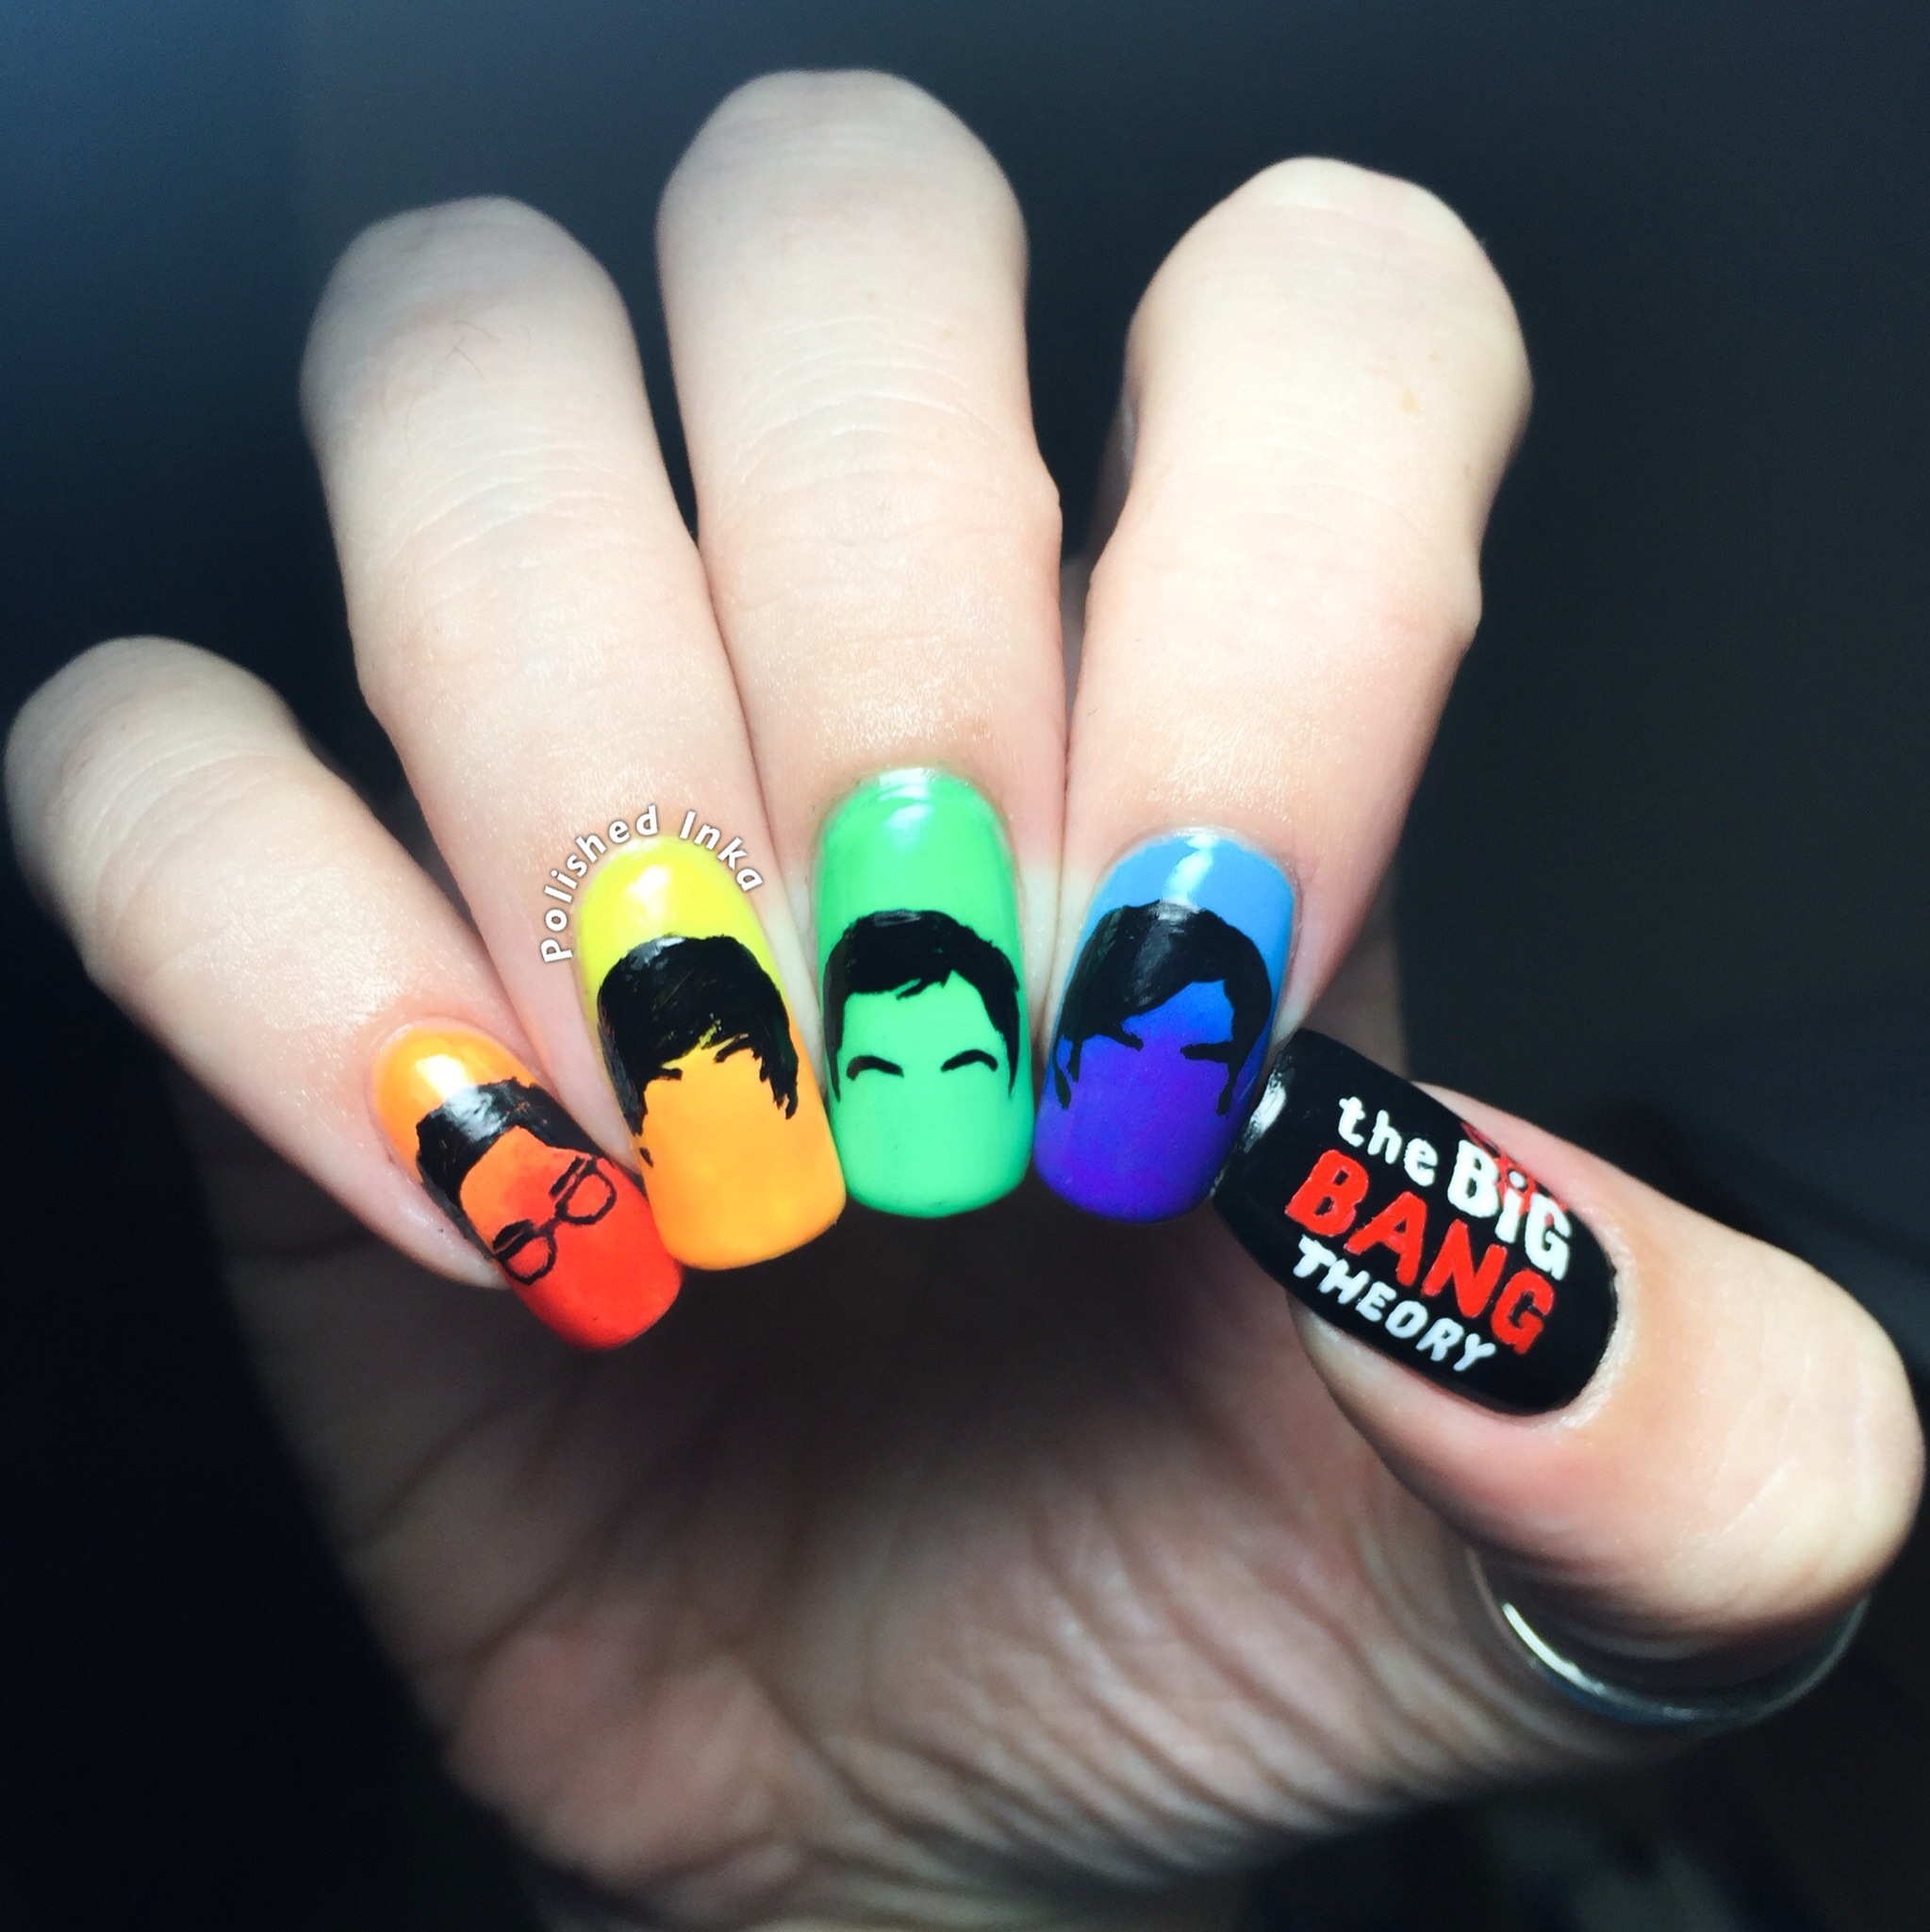 The big bang theory nail art polished inka using acrylic paints i recreated these silhouettes and i am so pleased with the results i hope you like it xoxo prinsesfo Image collections